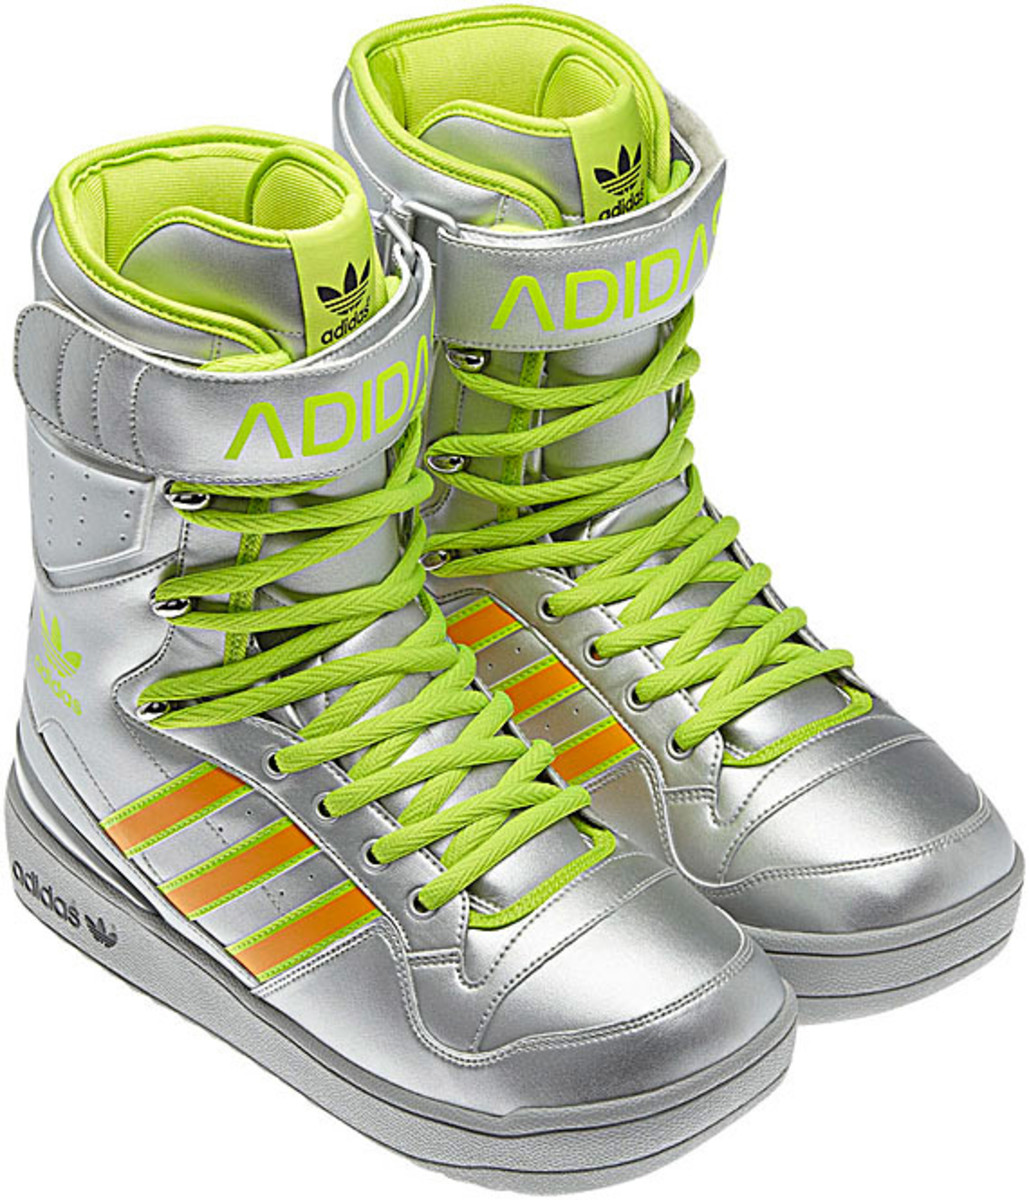 adidas-originals-jeremy-scott-footwear-collection-fall-winter-2012-18